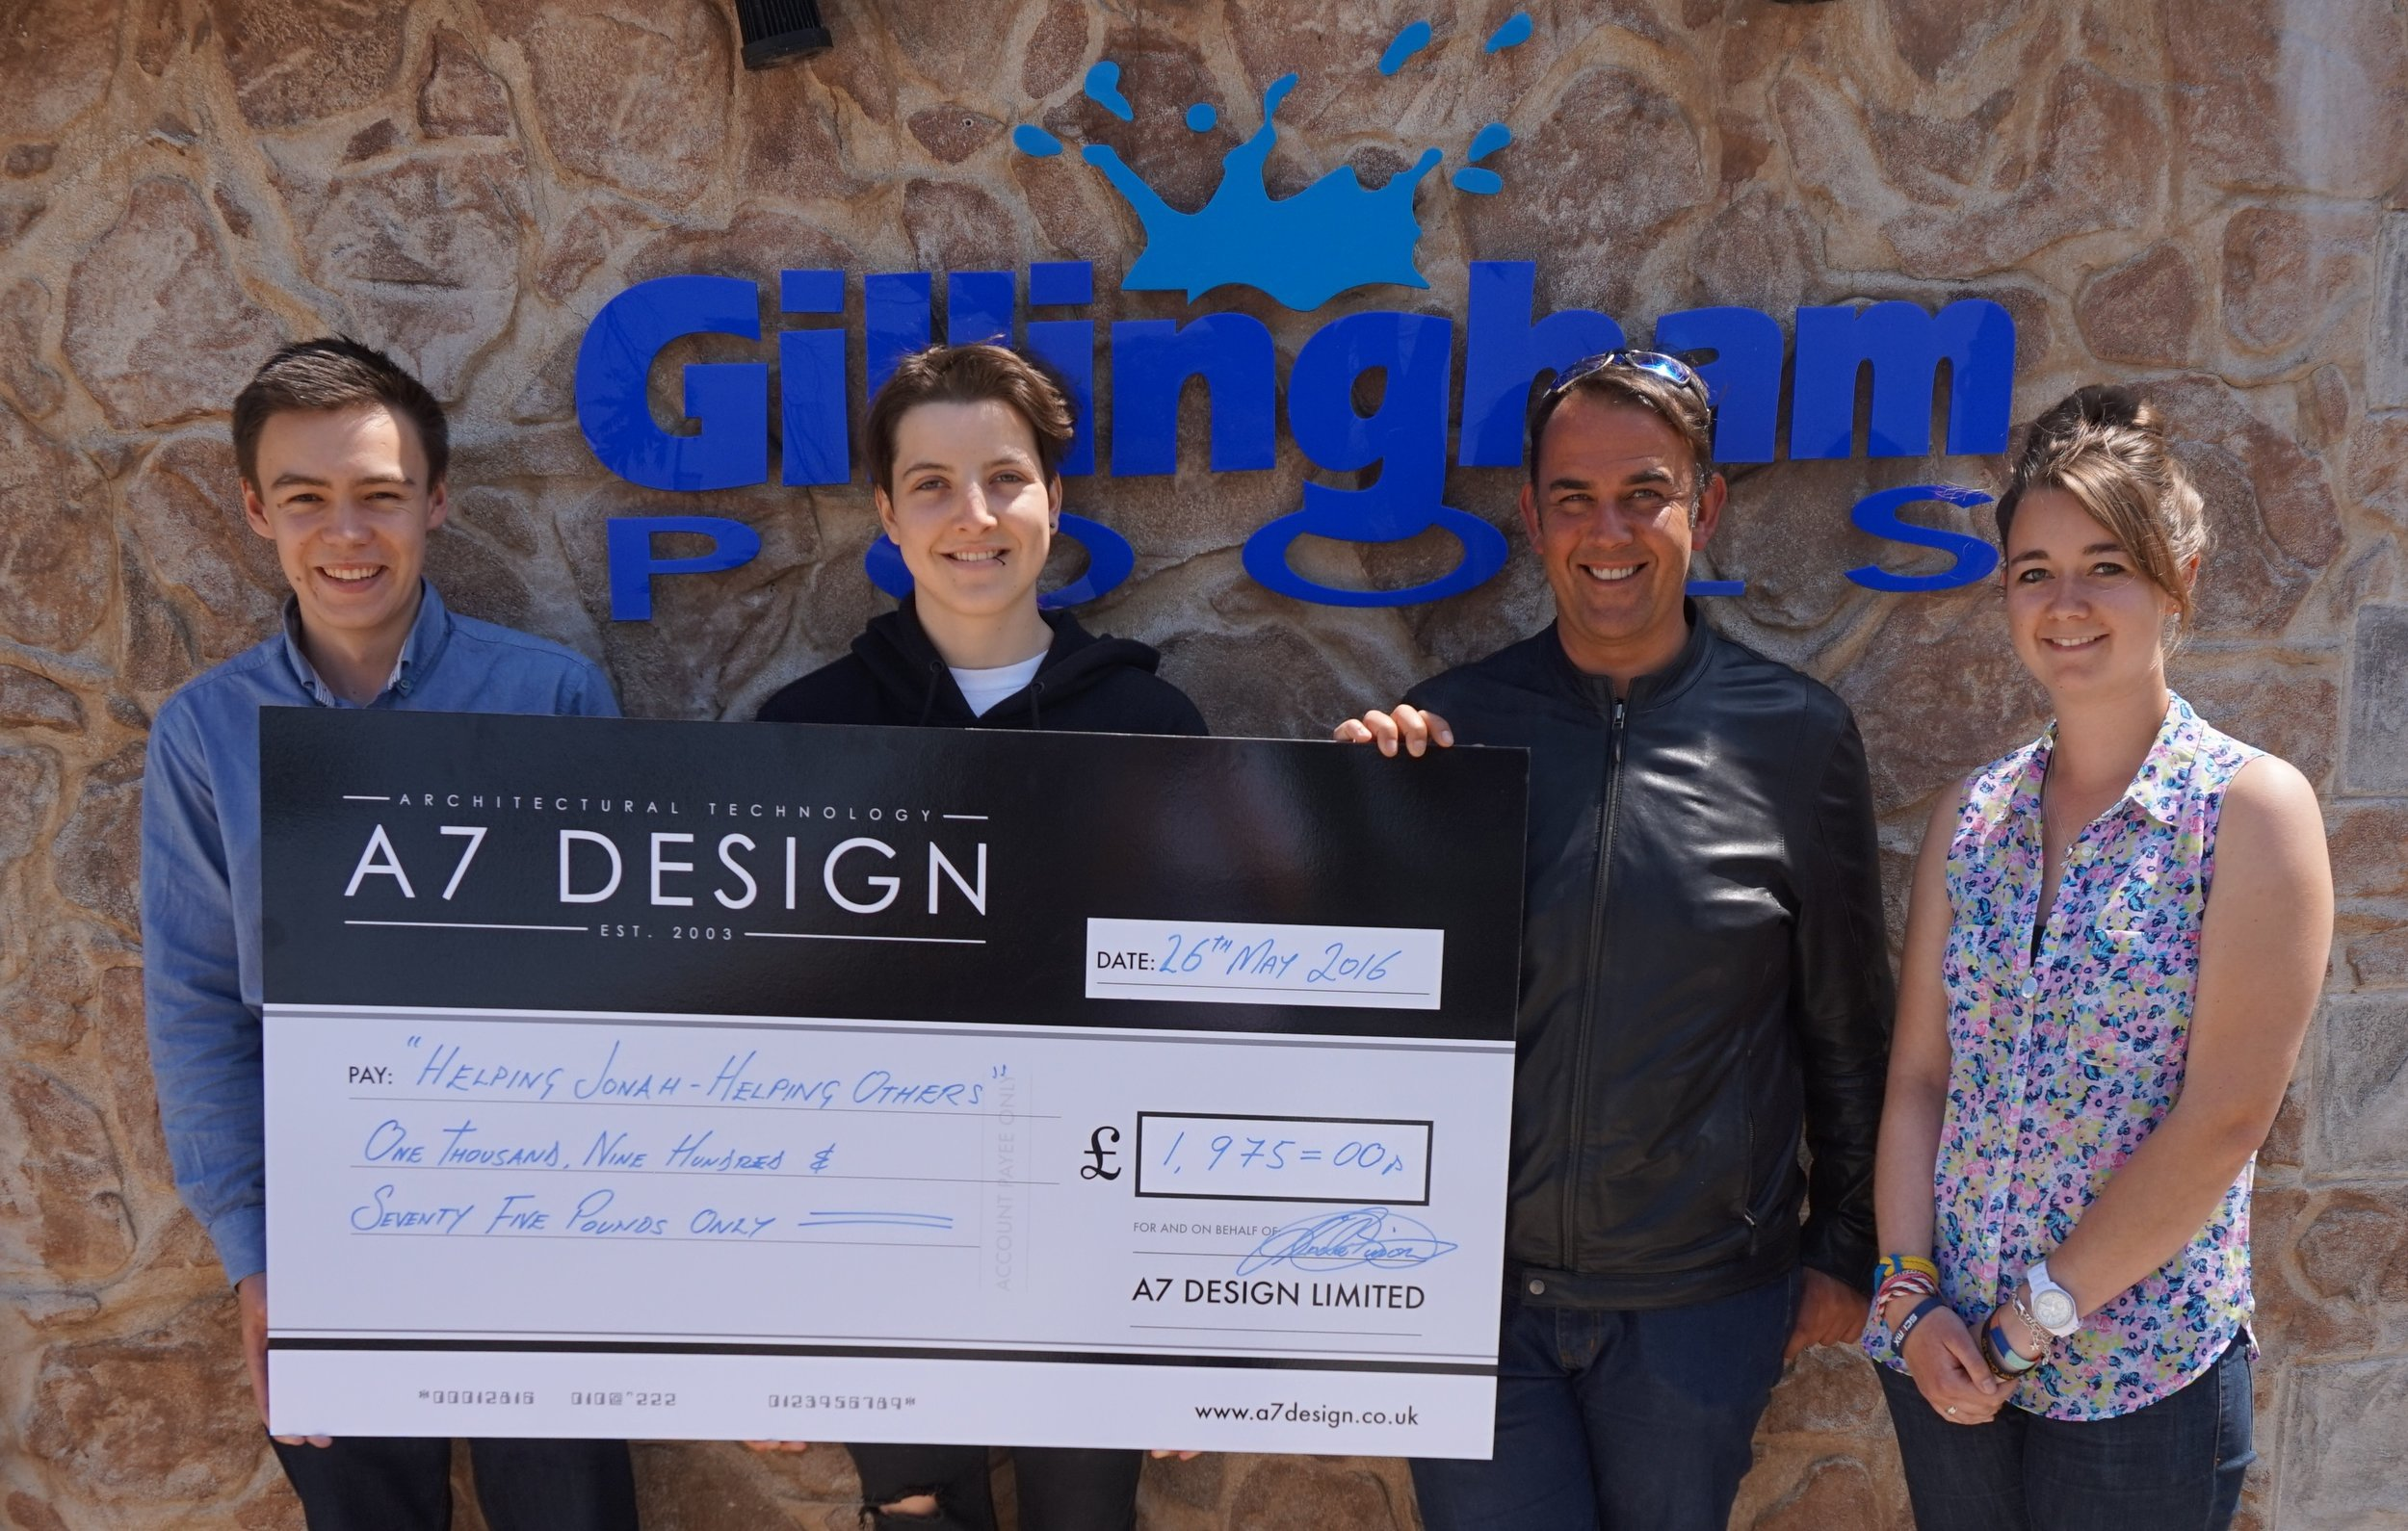 A7 DESIGN - thanks to the team at A7 design for raising an amazing £ 1,975.00 through their donation scheme.  Jonah 2nd left with Andre Bisson 3rd left and Team